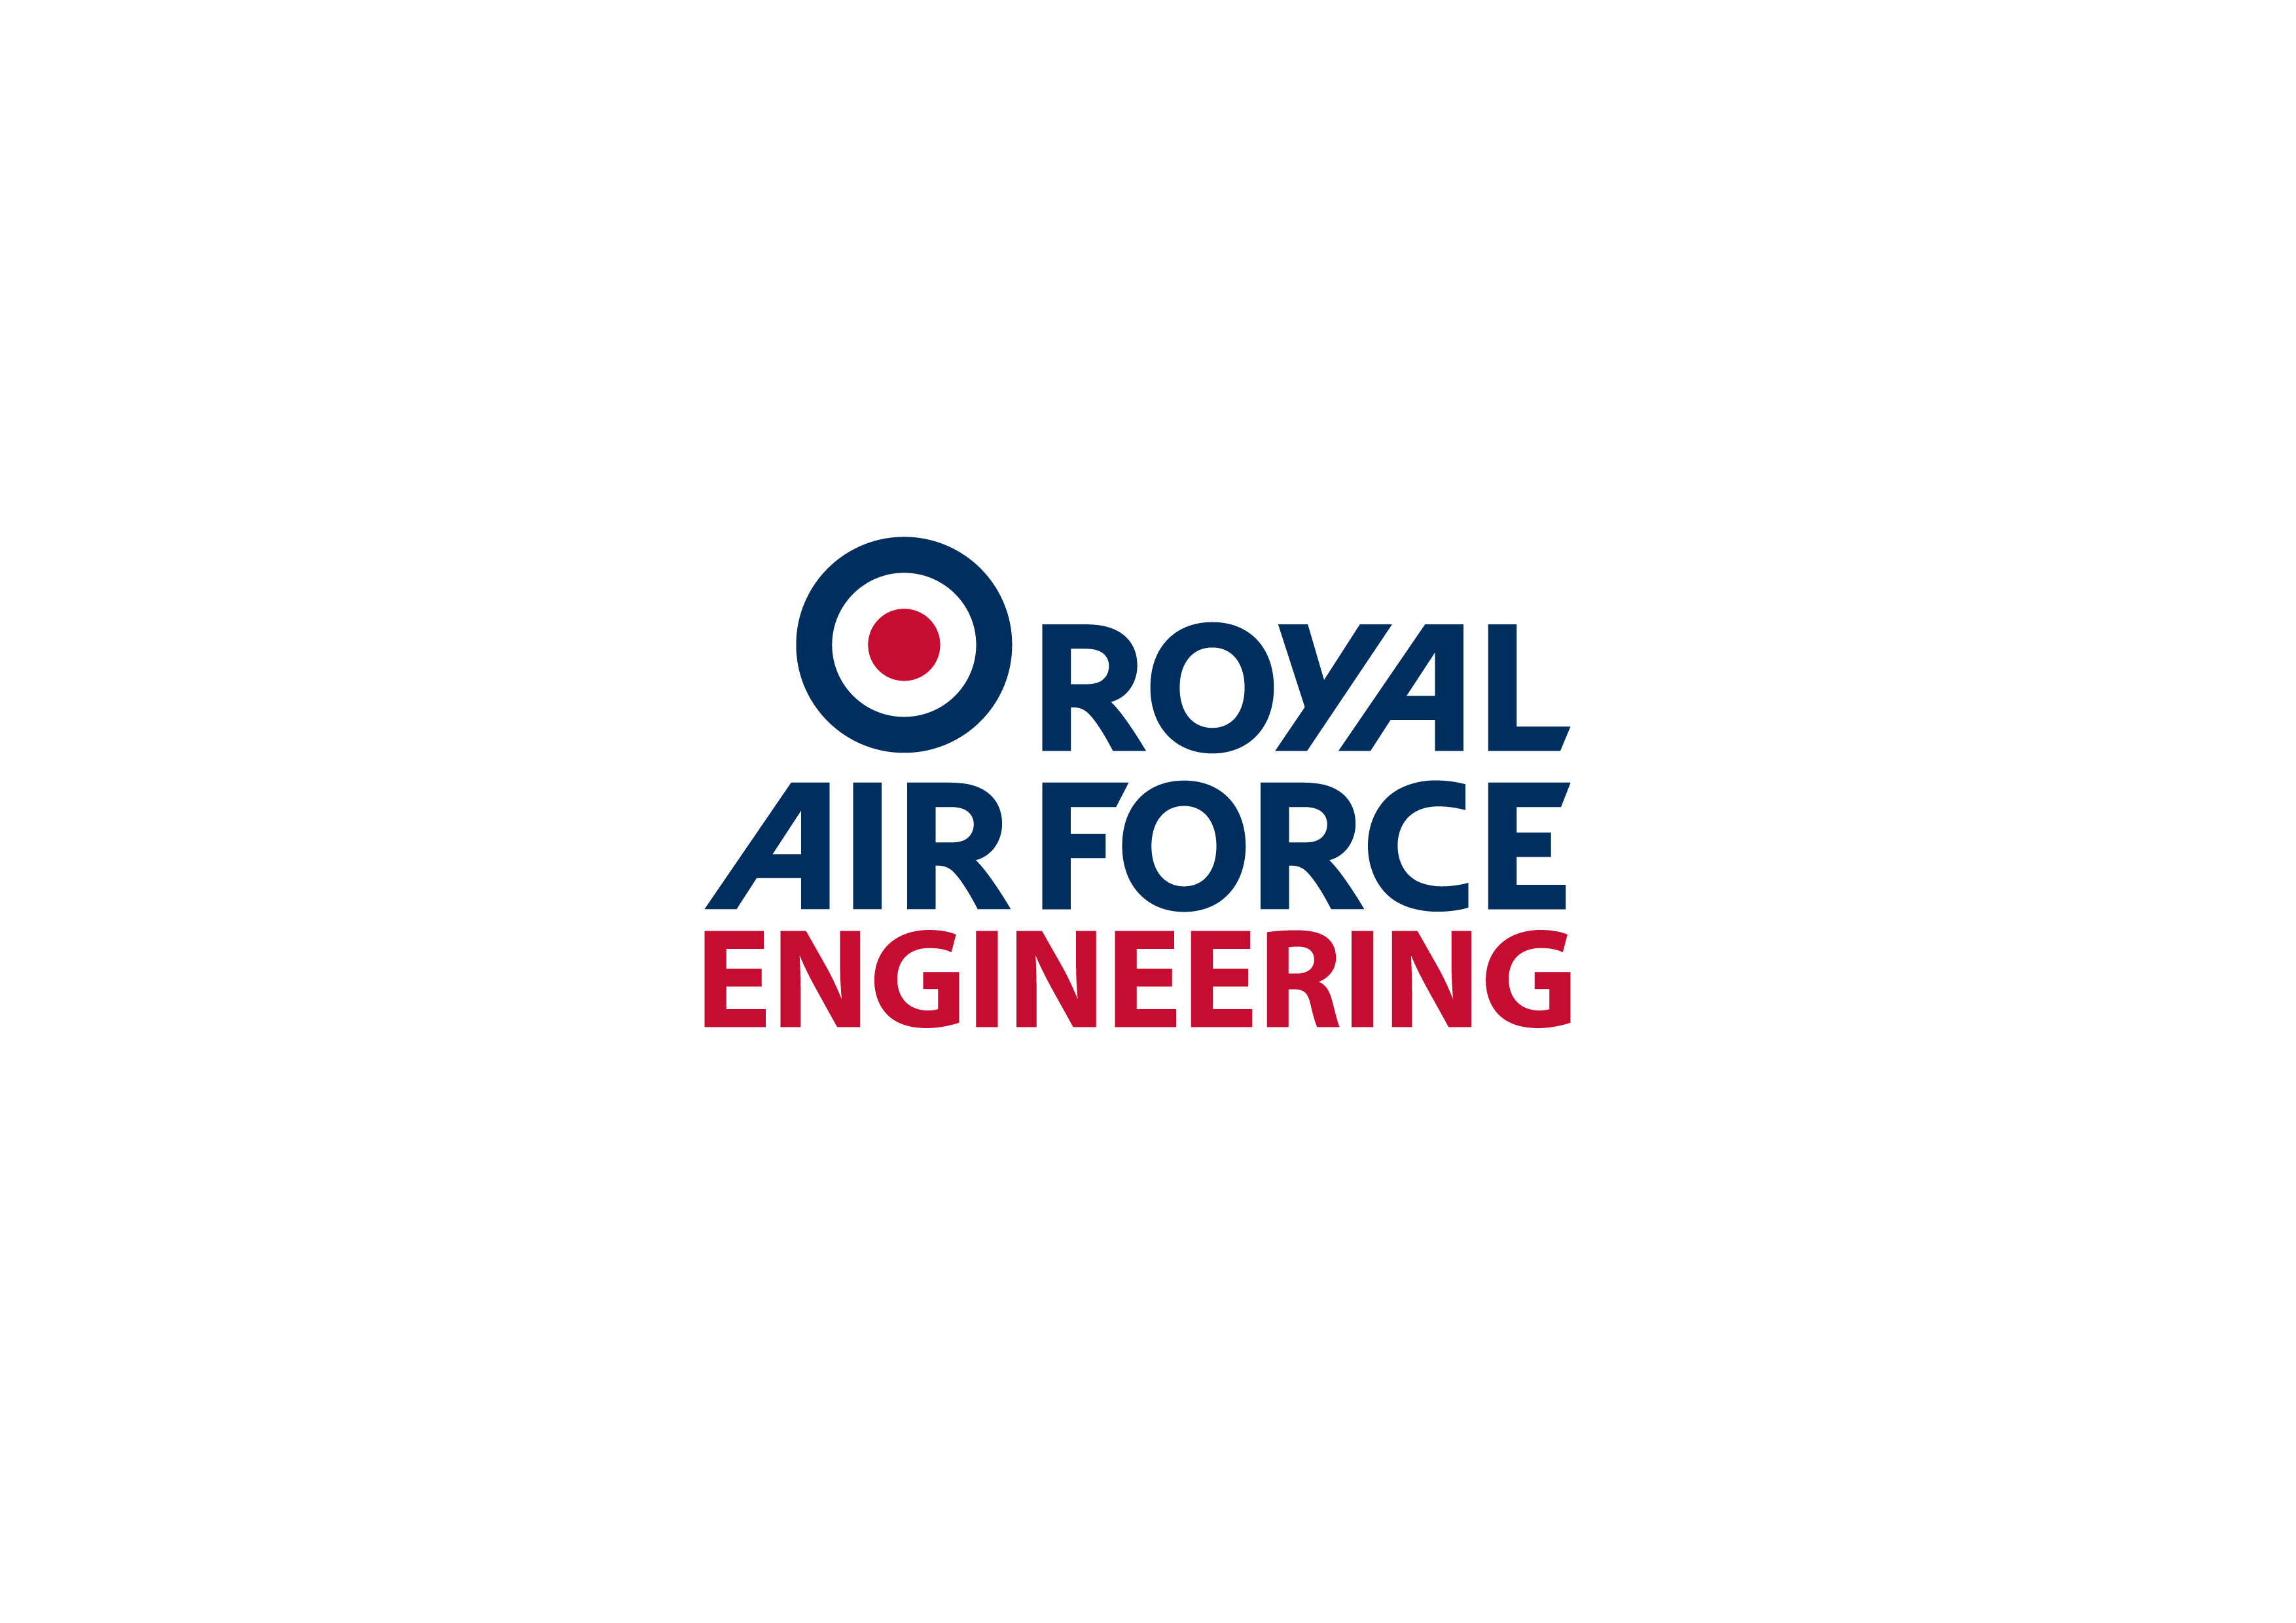 Working in the RAF isn't what you think it is | Engineering